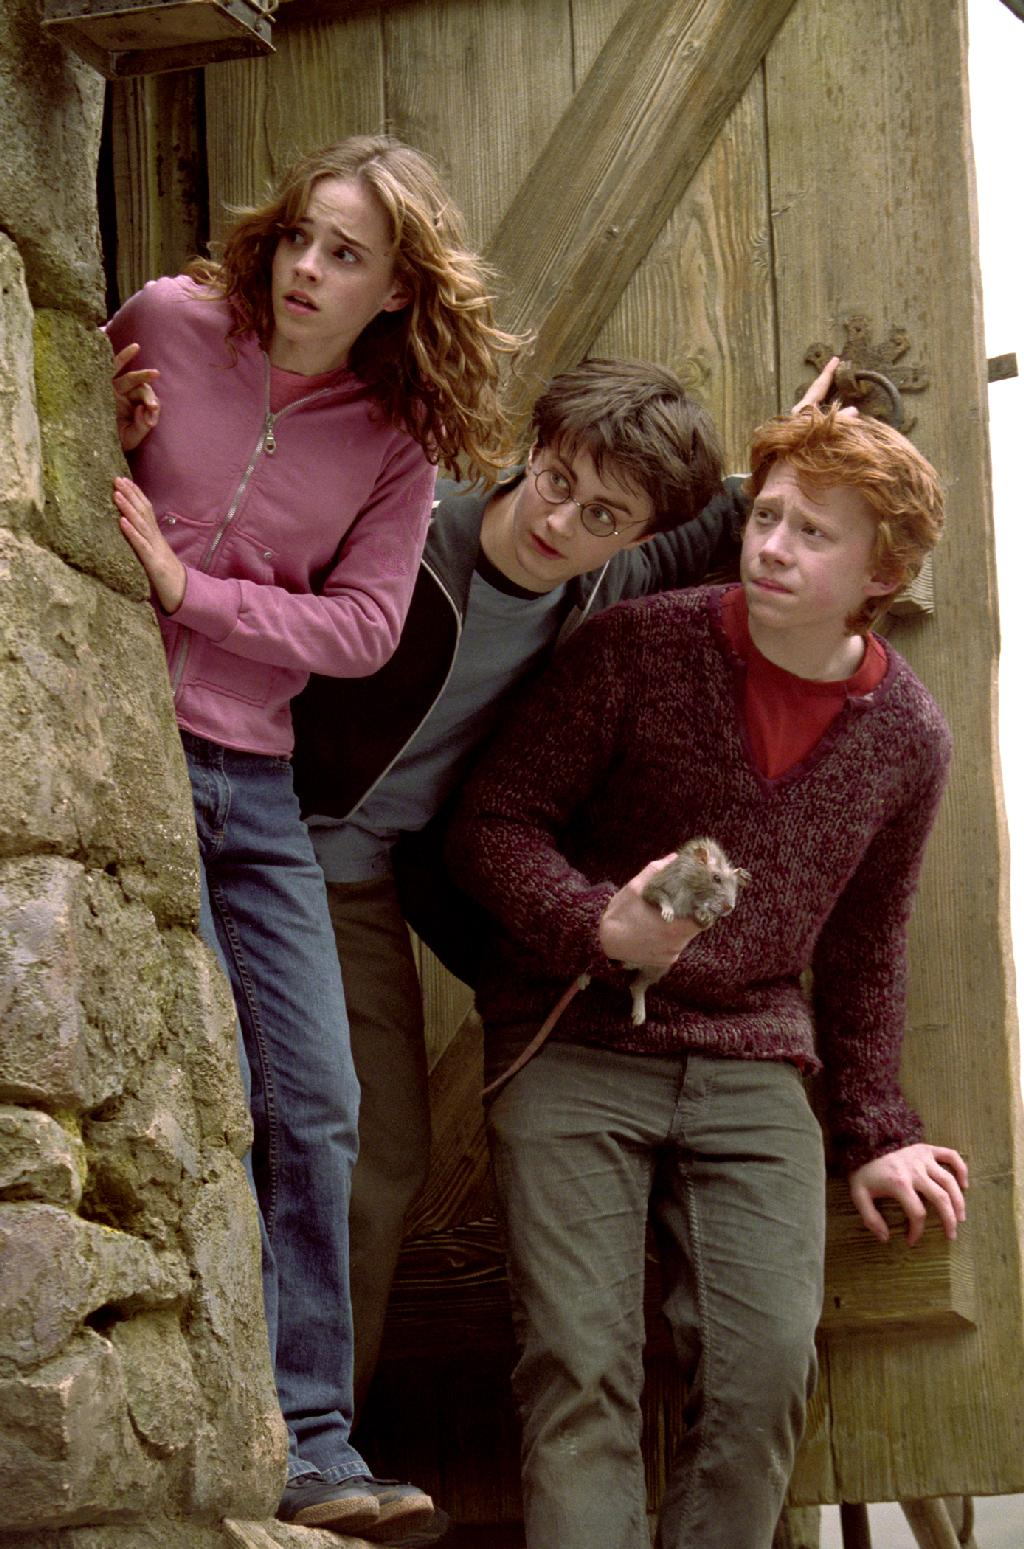 The three leads in Harry Potter and the Prisoner of Azkaban movieloversreviews.blogspot.com